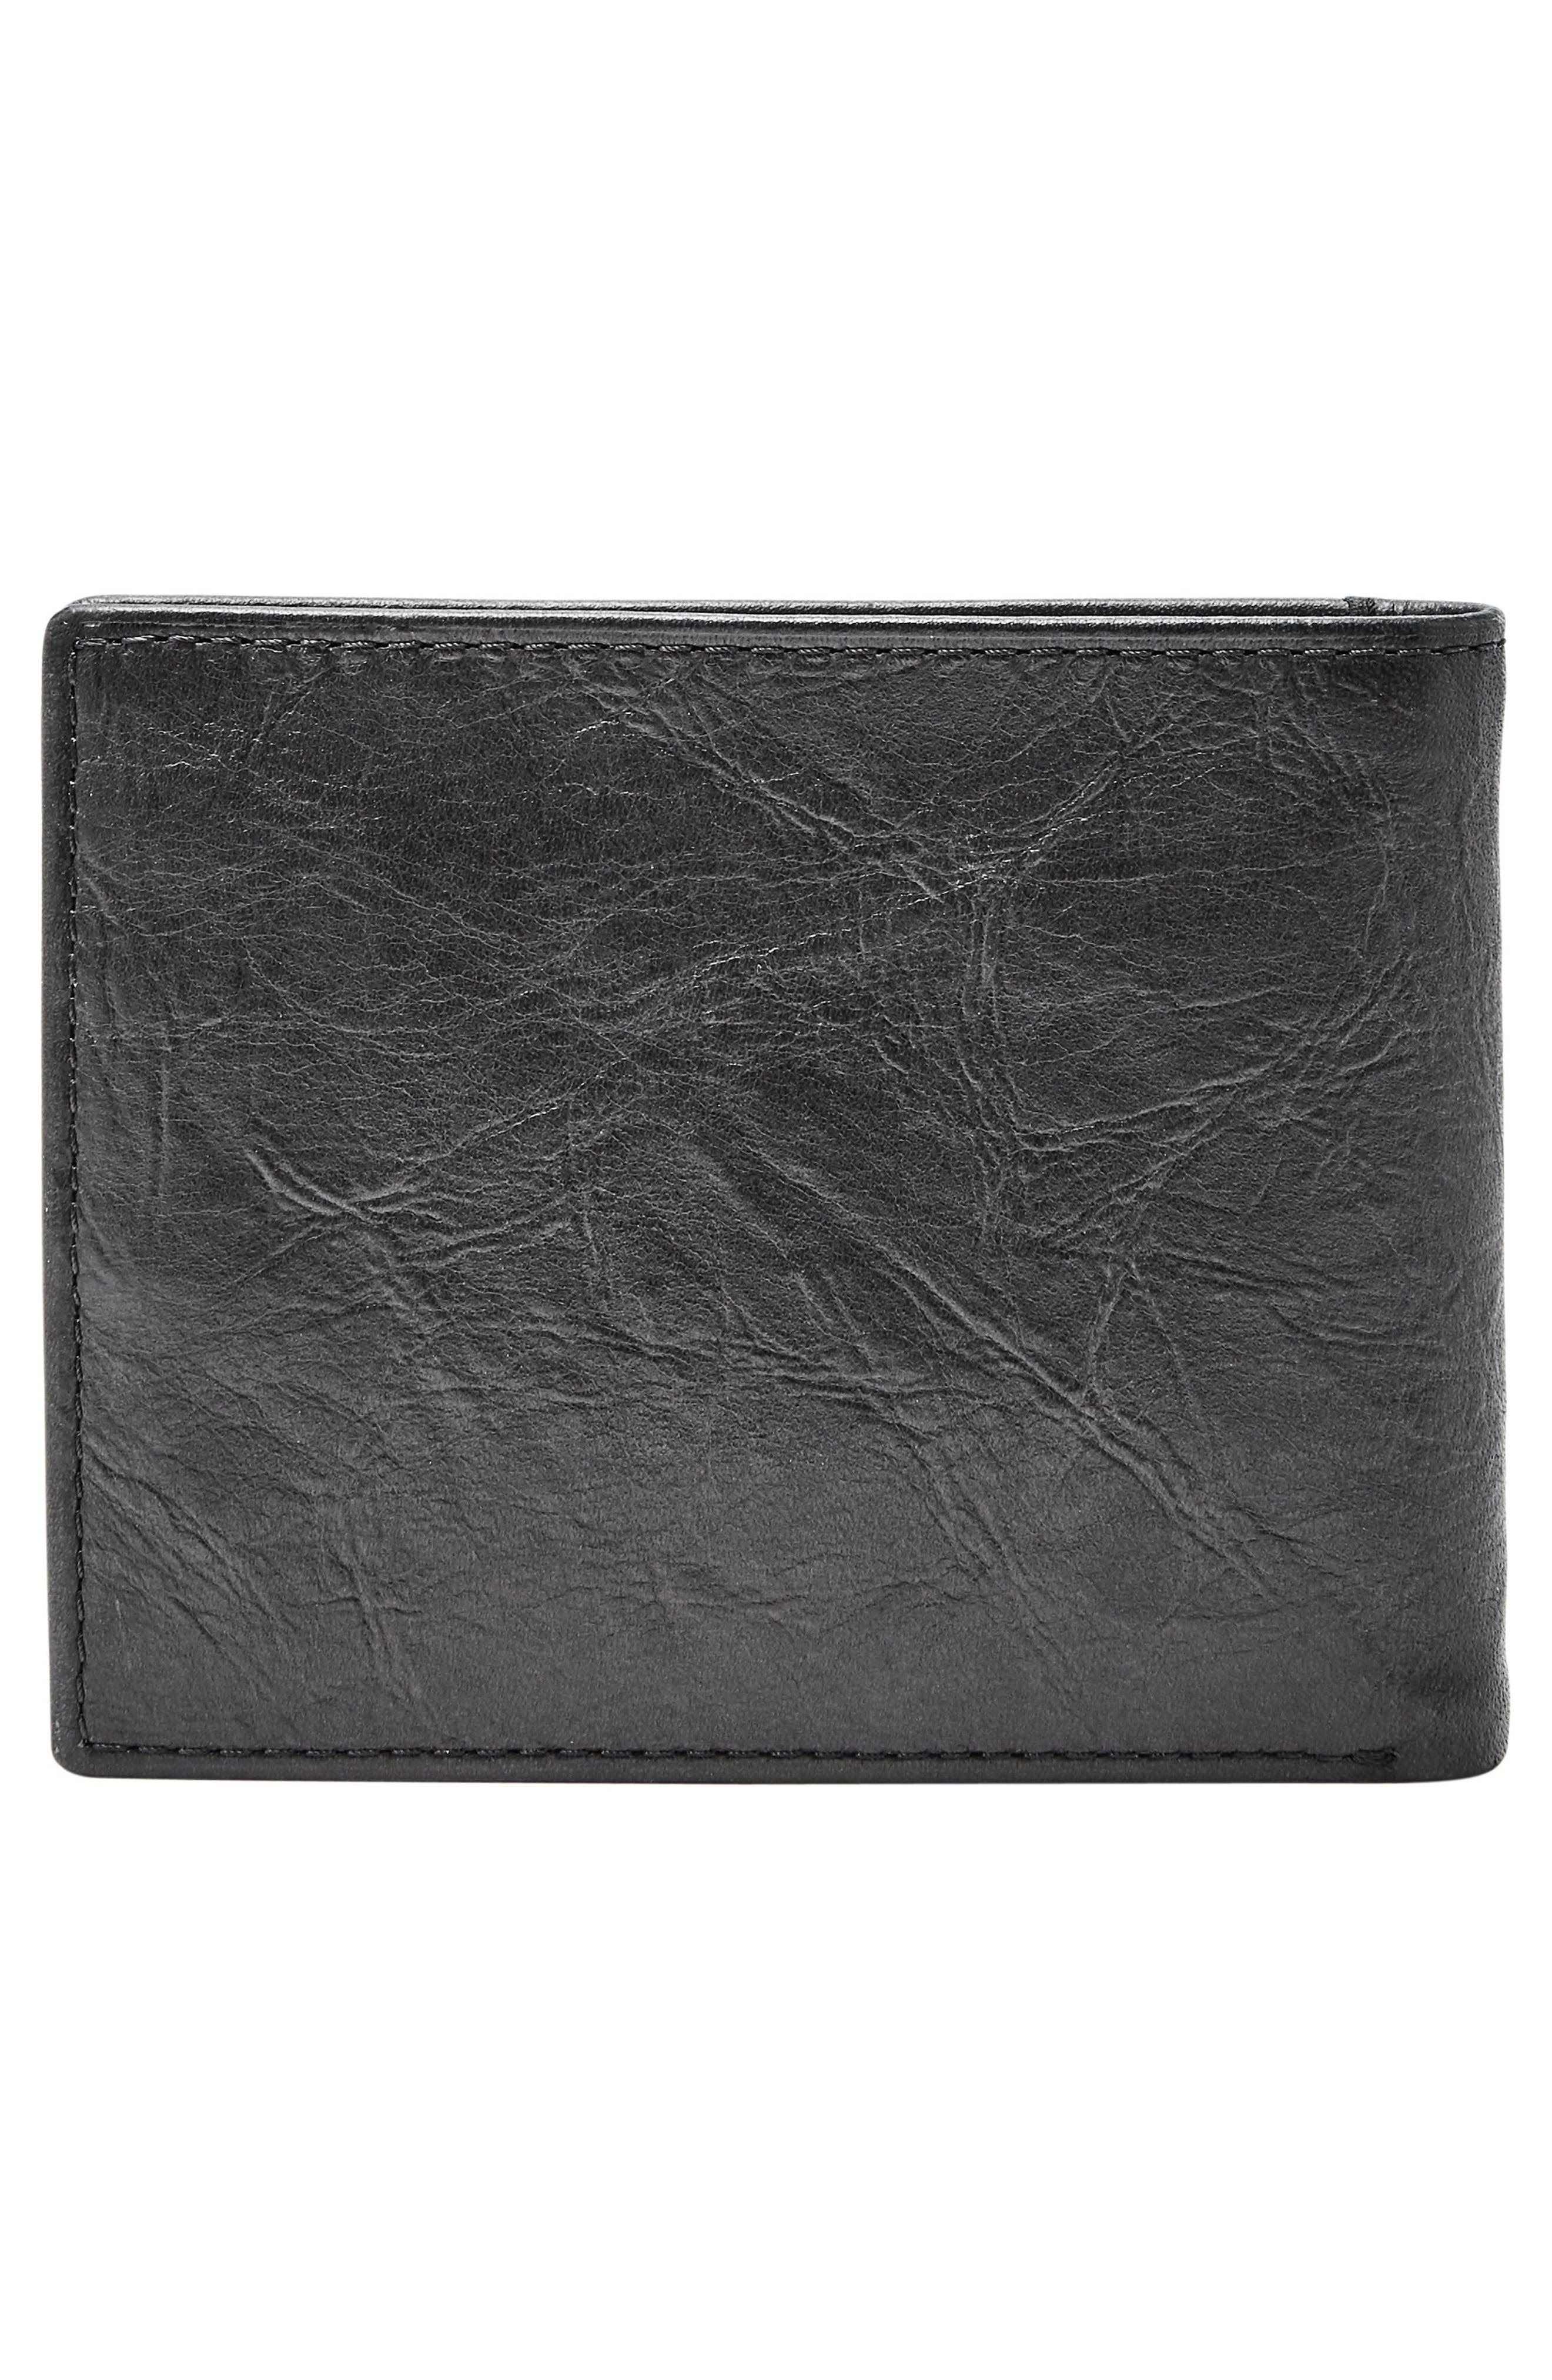 FOSSIL, Leather Wallet, Alternate thumbnail 4, color, BLACK